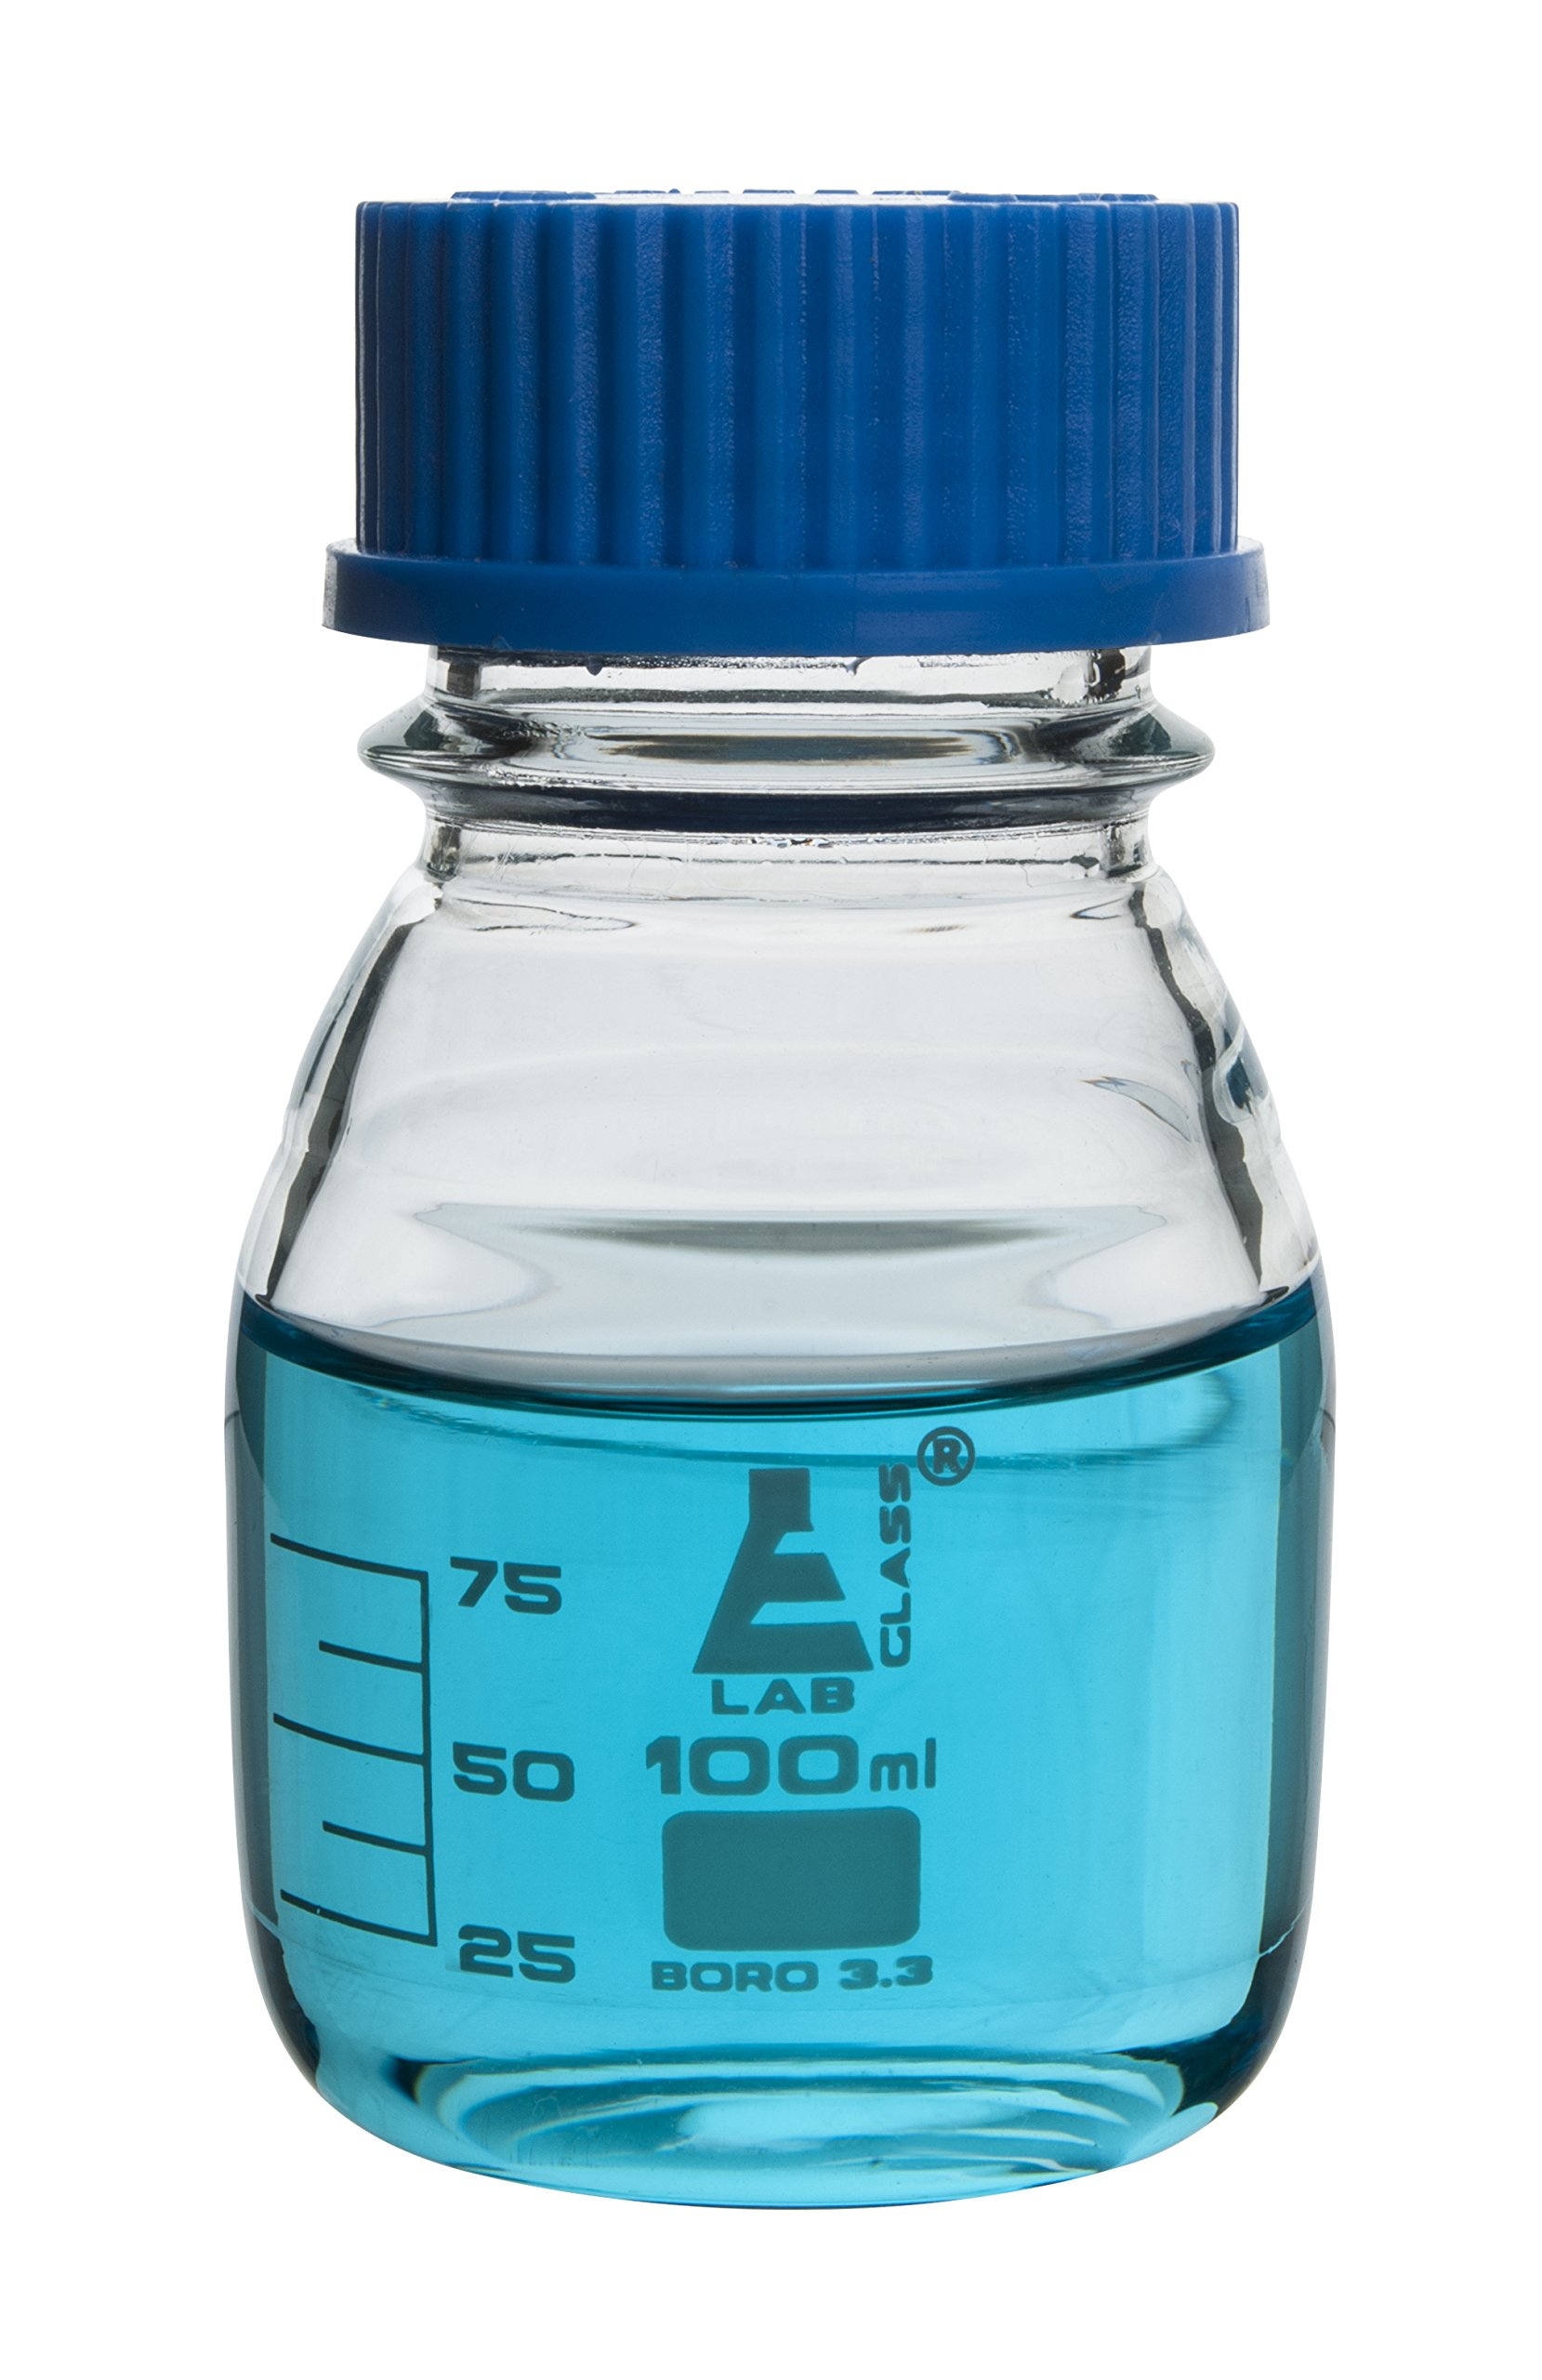 Eisco Labs 100ml Clear Reagent Bottle with Screw Cap and 10ml Graduations